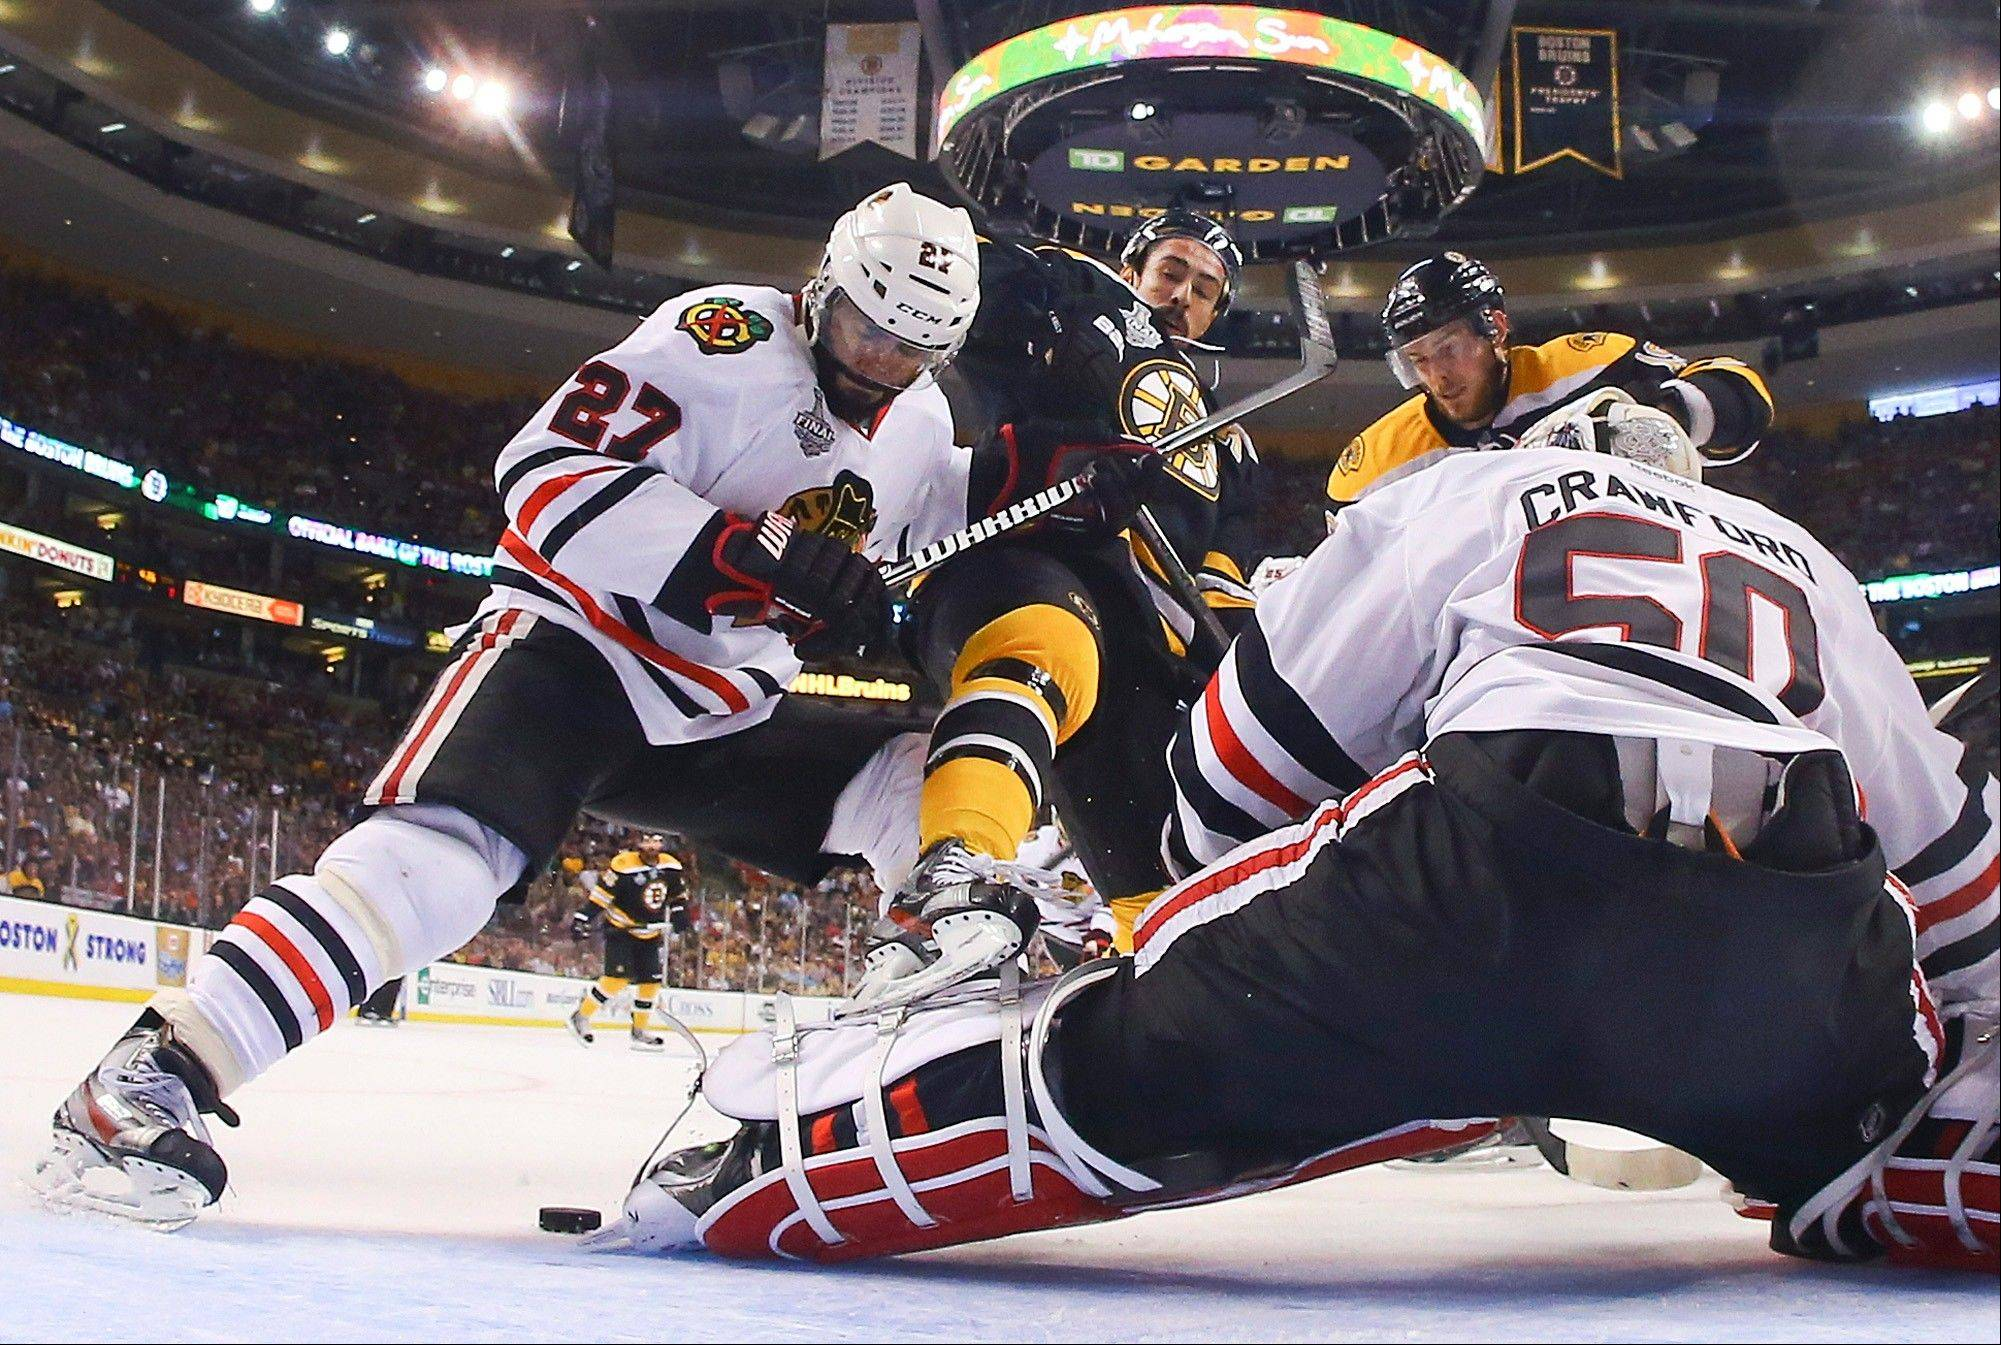 Chicago Blackhawks defenseman Johnny Oduya (27), of Sweden, Boston Bruins centers Chris Kelly (23), and Tyler Seguin (19) fight for position in front of Blackhawks goalie Corey Crawford (50) during the first period in Game 6 of the NHL hockey Stanley Cup Finals.